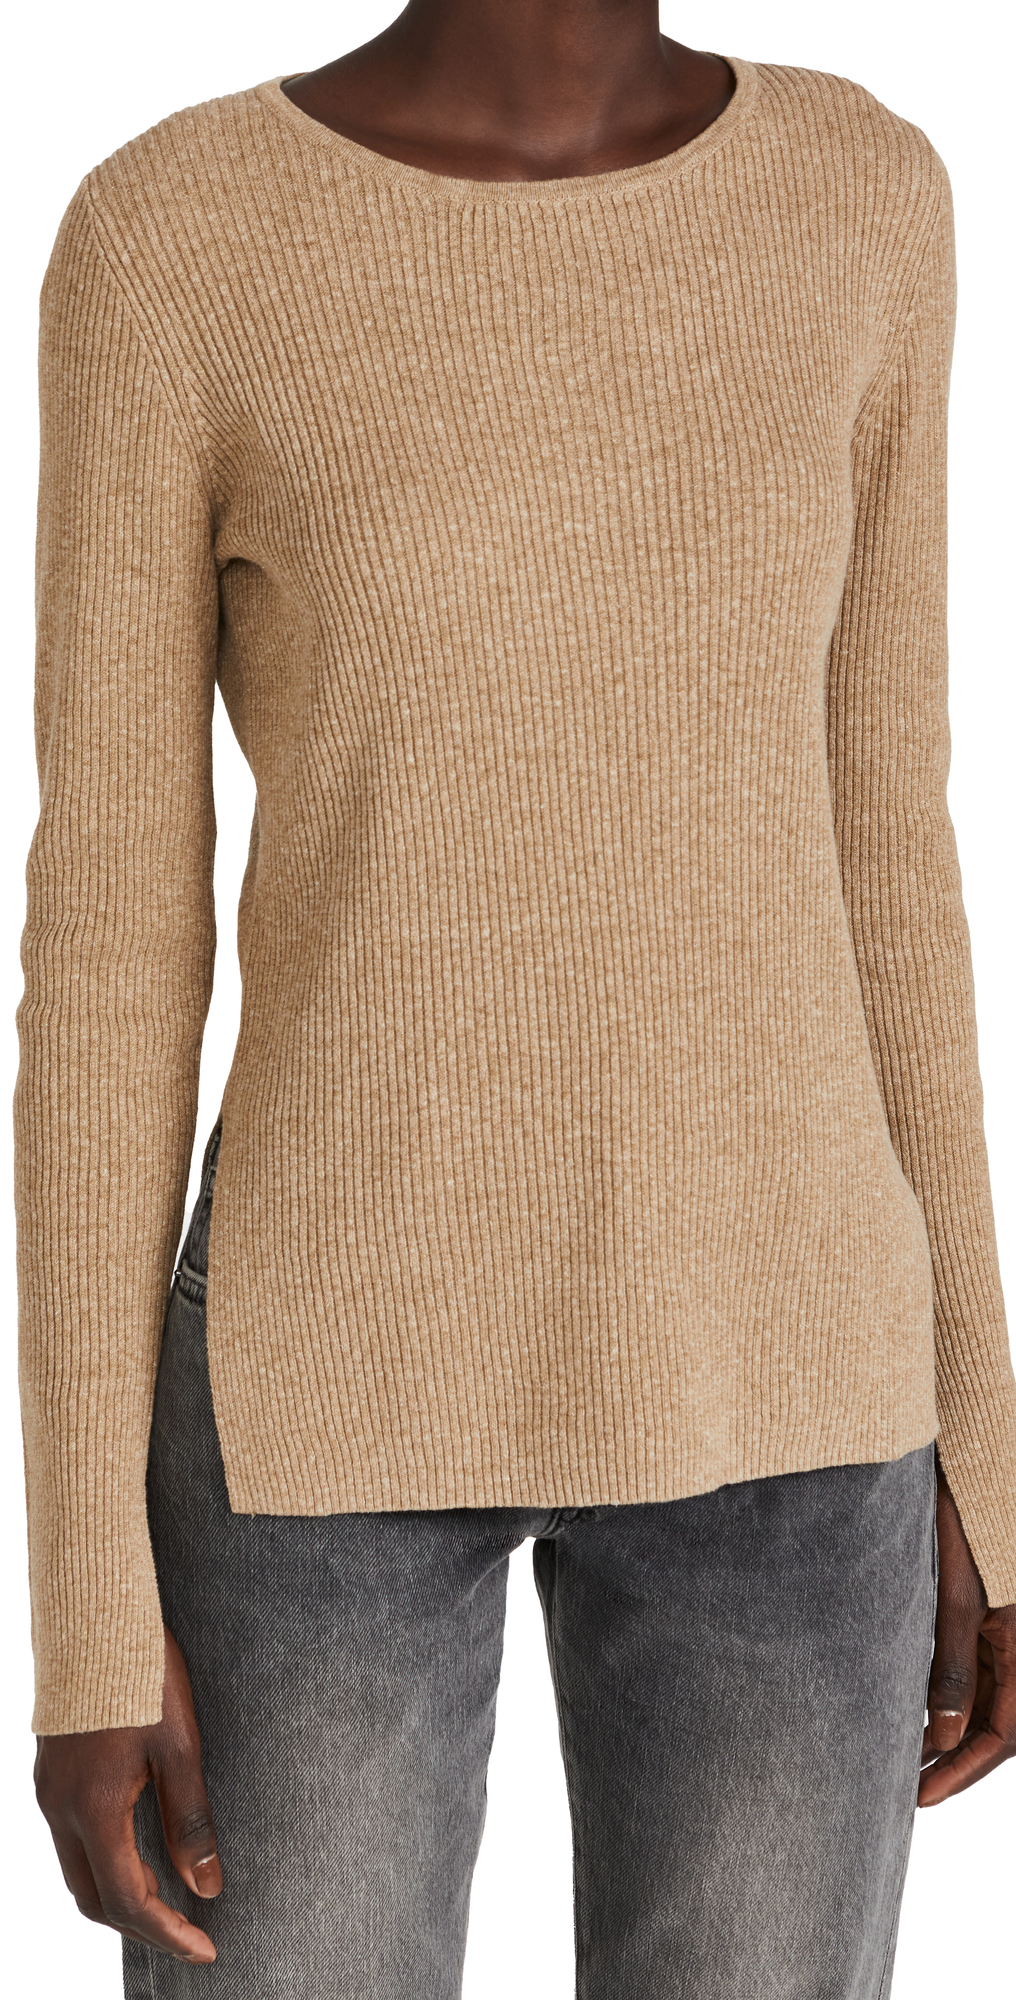 Fine Cotton Linen Ribbed Knit Sweater